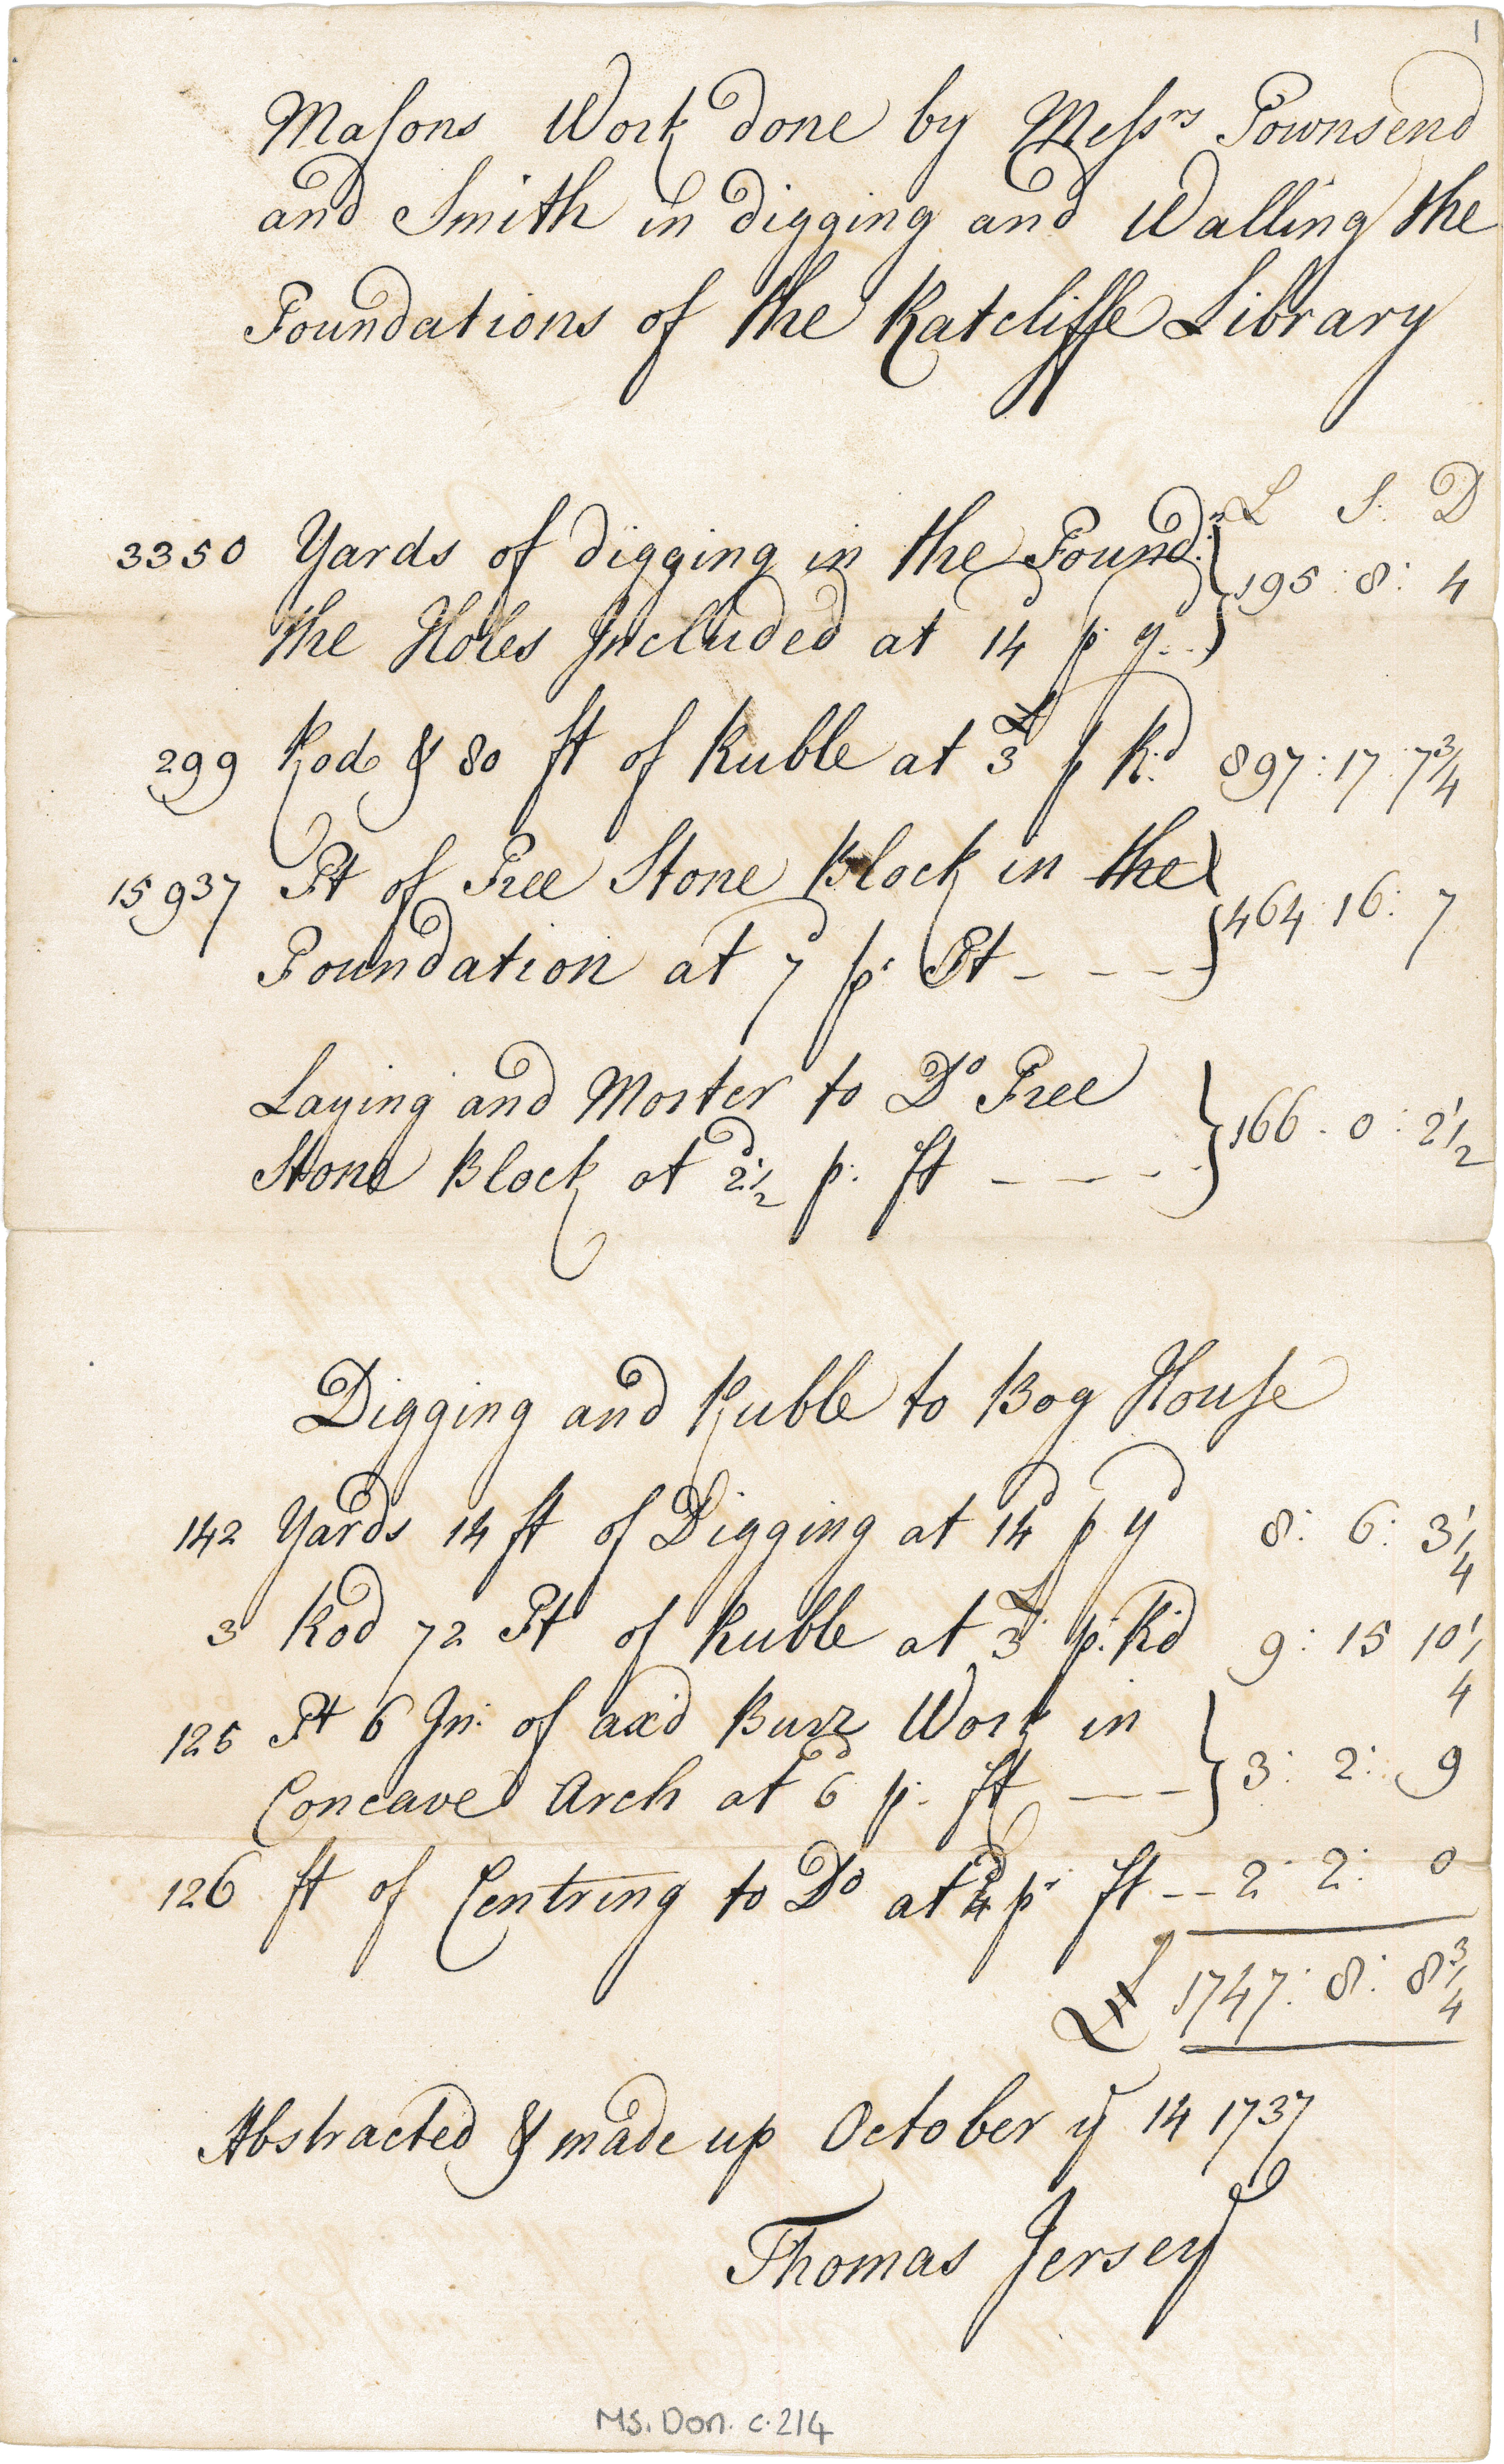 Abstract for the digging and walling of the foundations of the Radcliffe Library, 1737